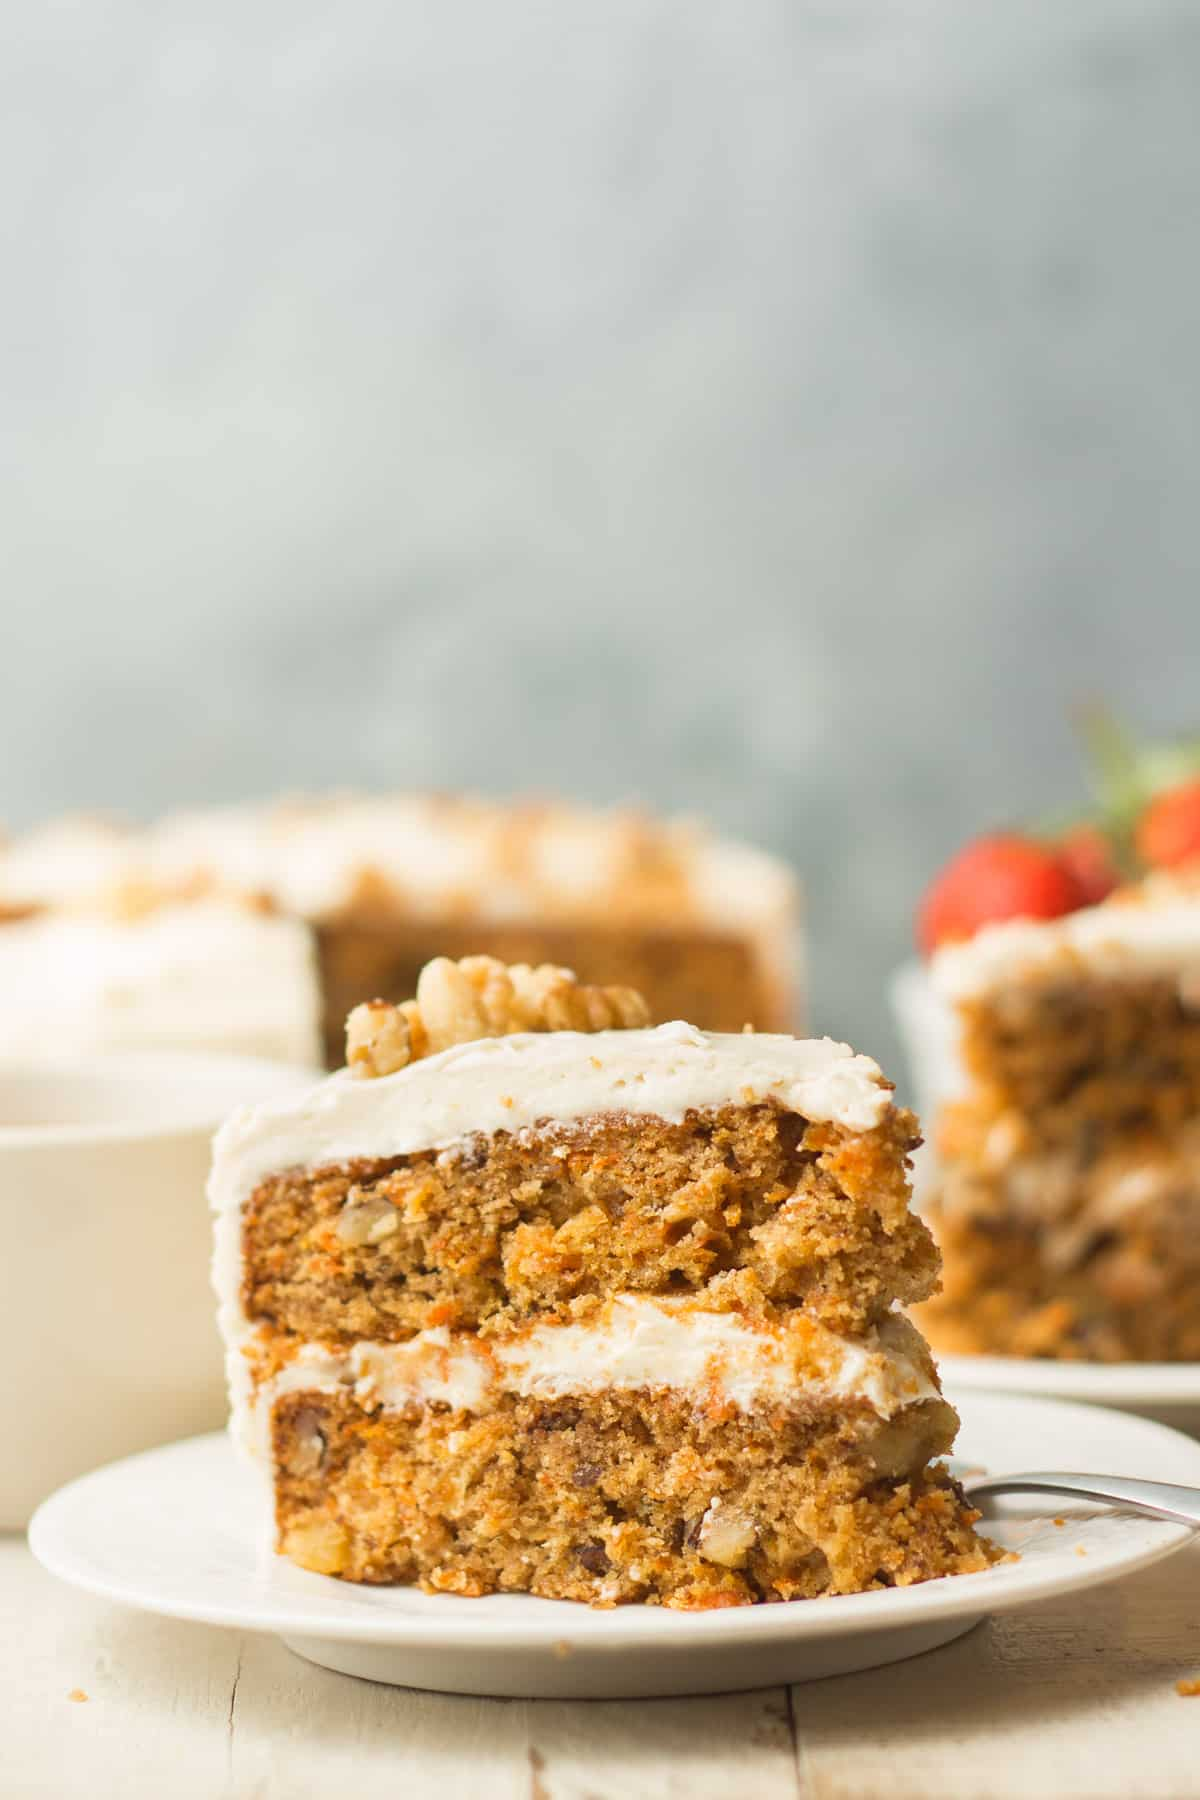 Close Up of a Slice of Vegan Carrot Cake on a Plate